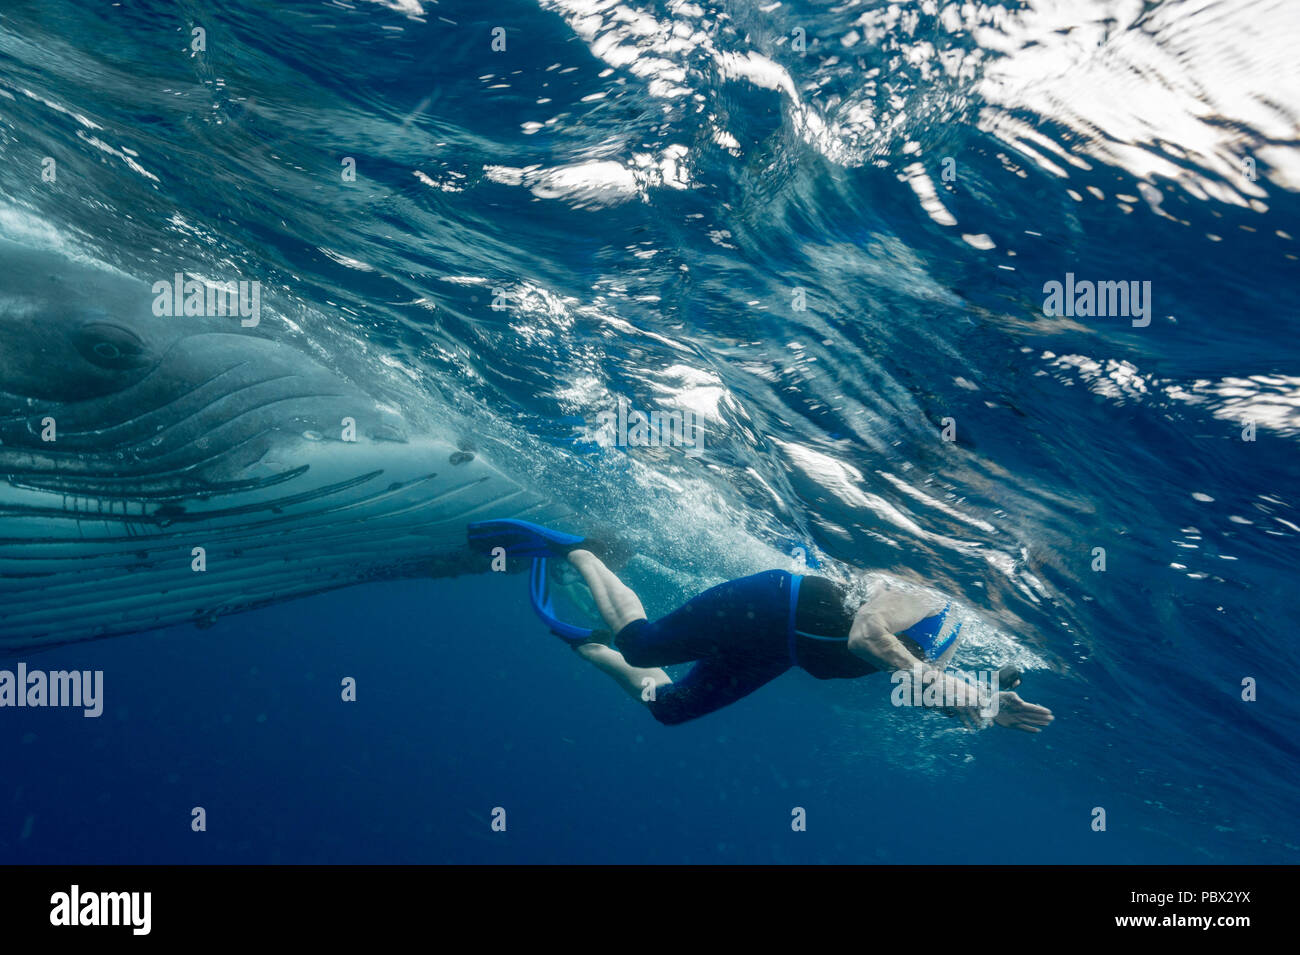 Humpback whale (Megaptear novaeangliae) with diver, Kingdom of Tonga. - Stock Image